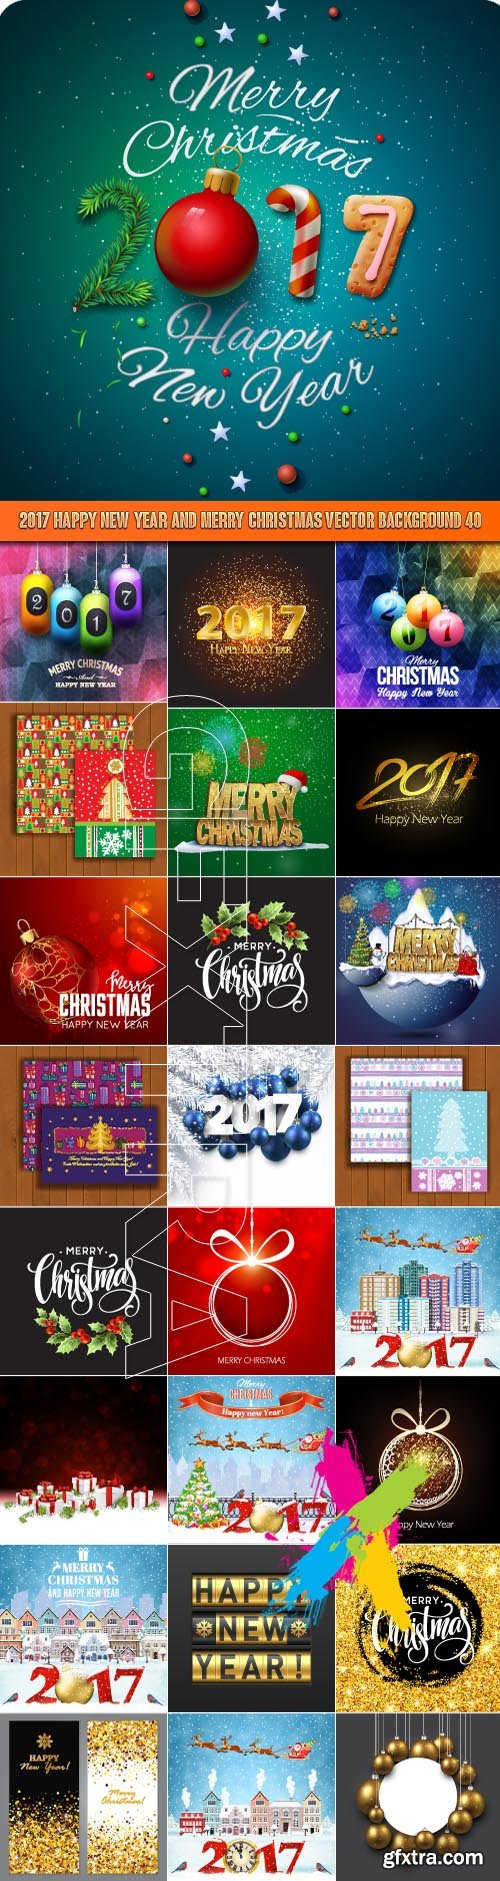 2017 Happy New Year and Merry Christmas vector background 40